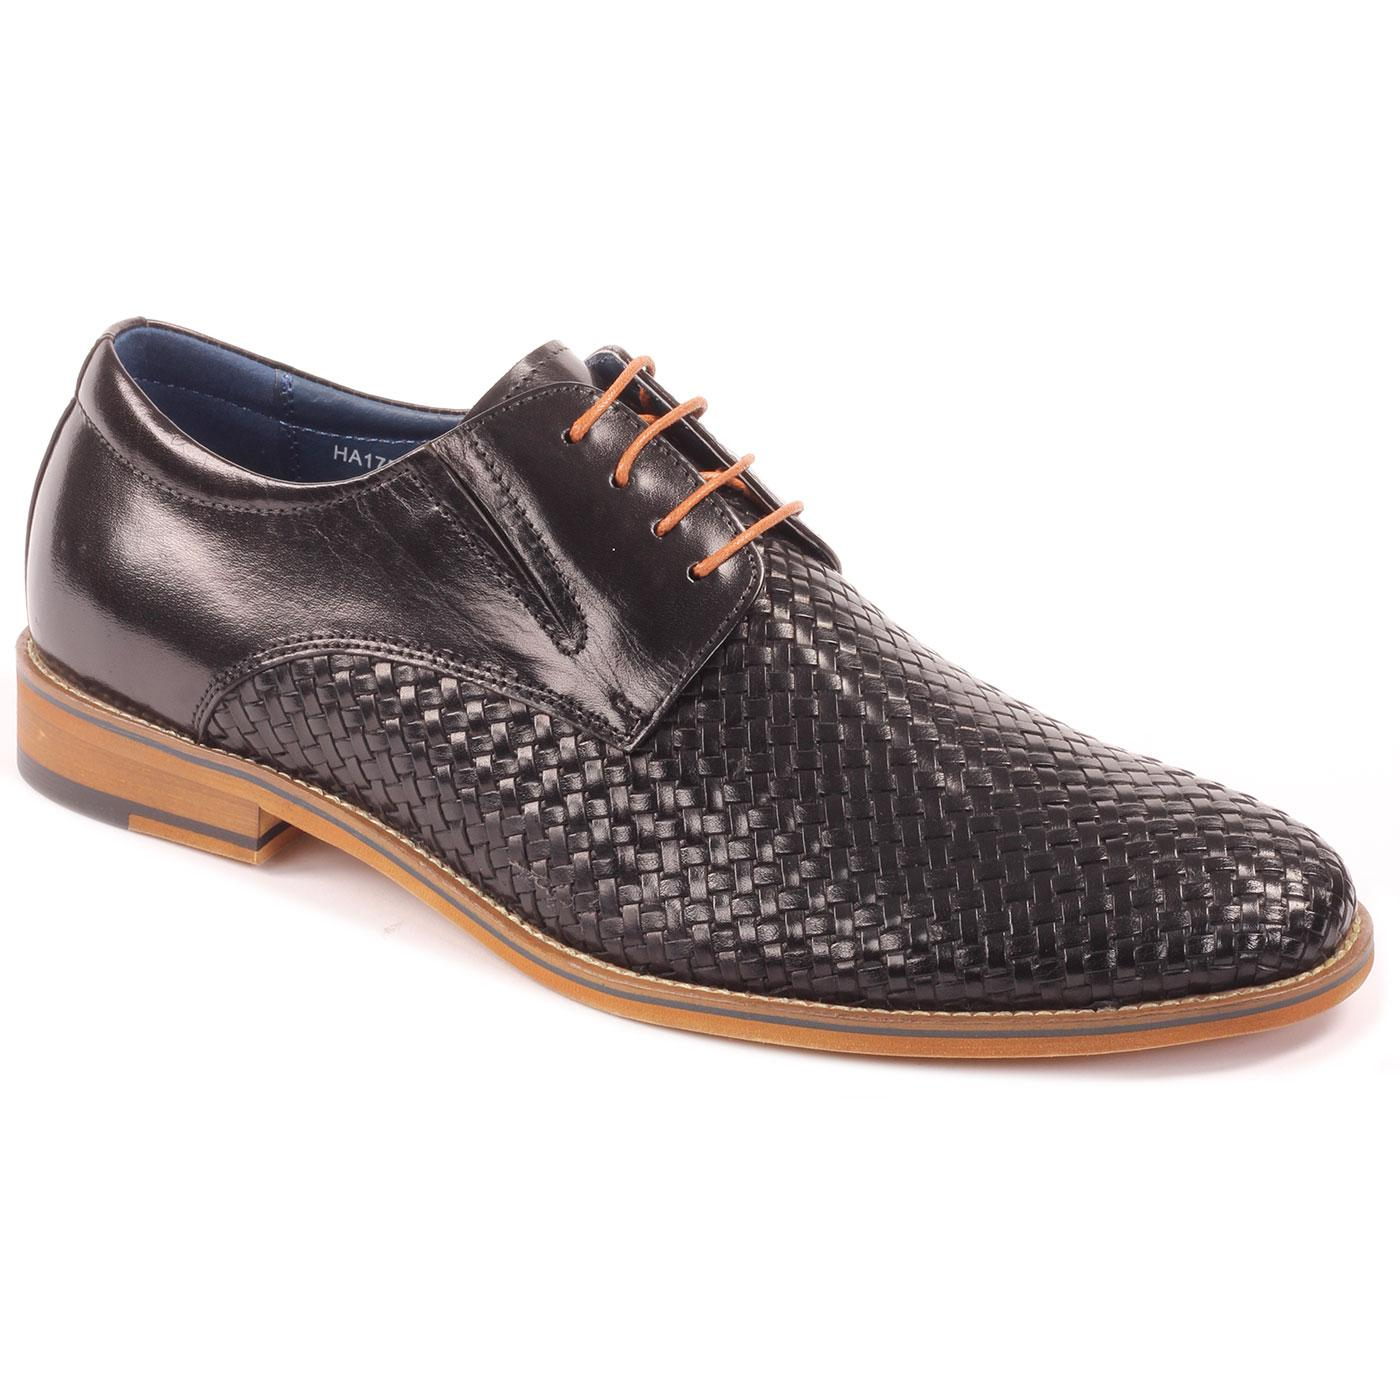 Toni SERGIO DULETTI Basket Weave Derby Shoes BLACK